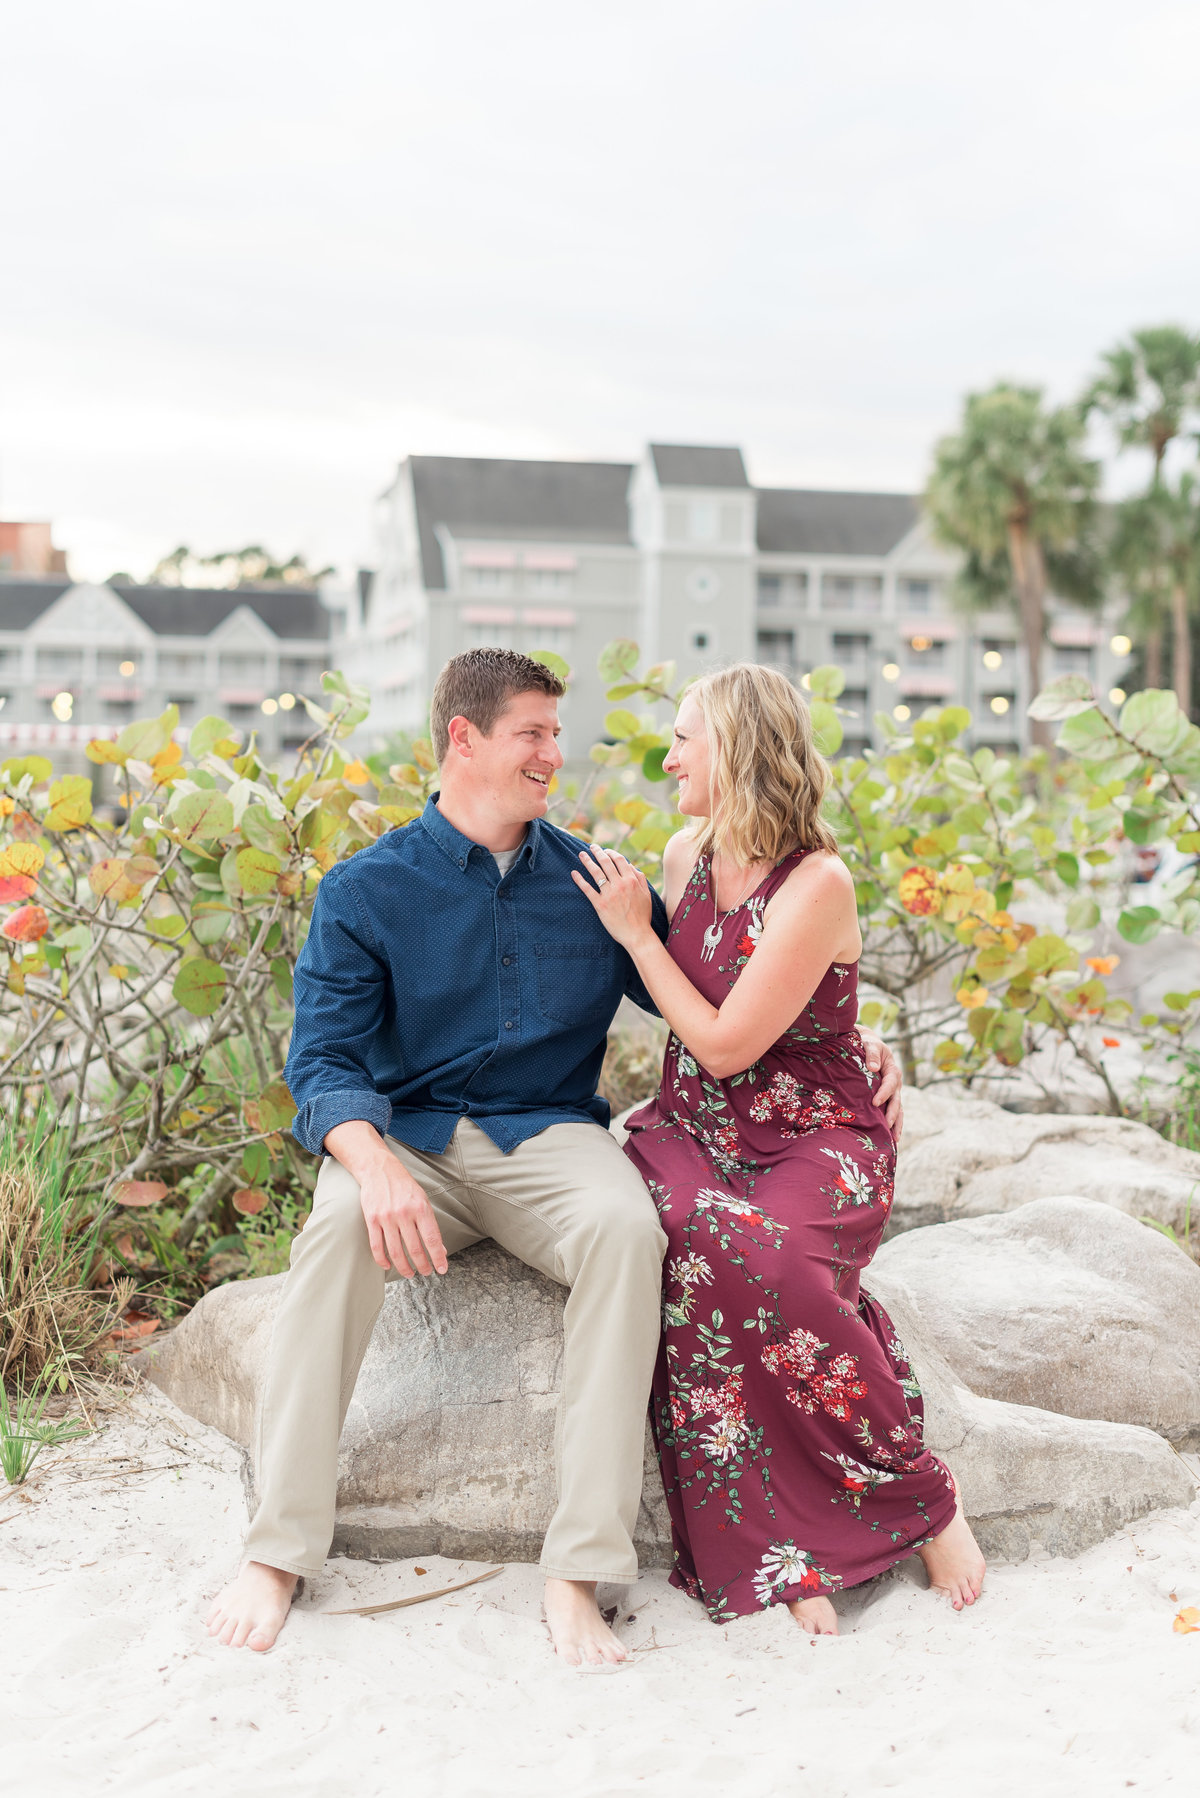 Disney Family Photographer, Disney Family Photos at the Boardwalk, Boardwalk Family Session